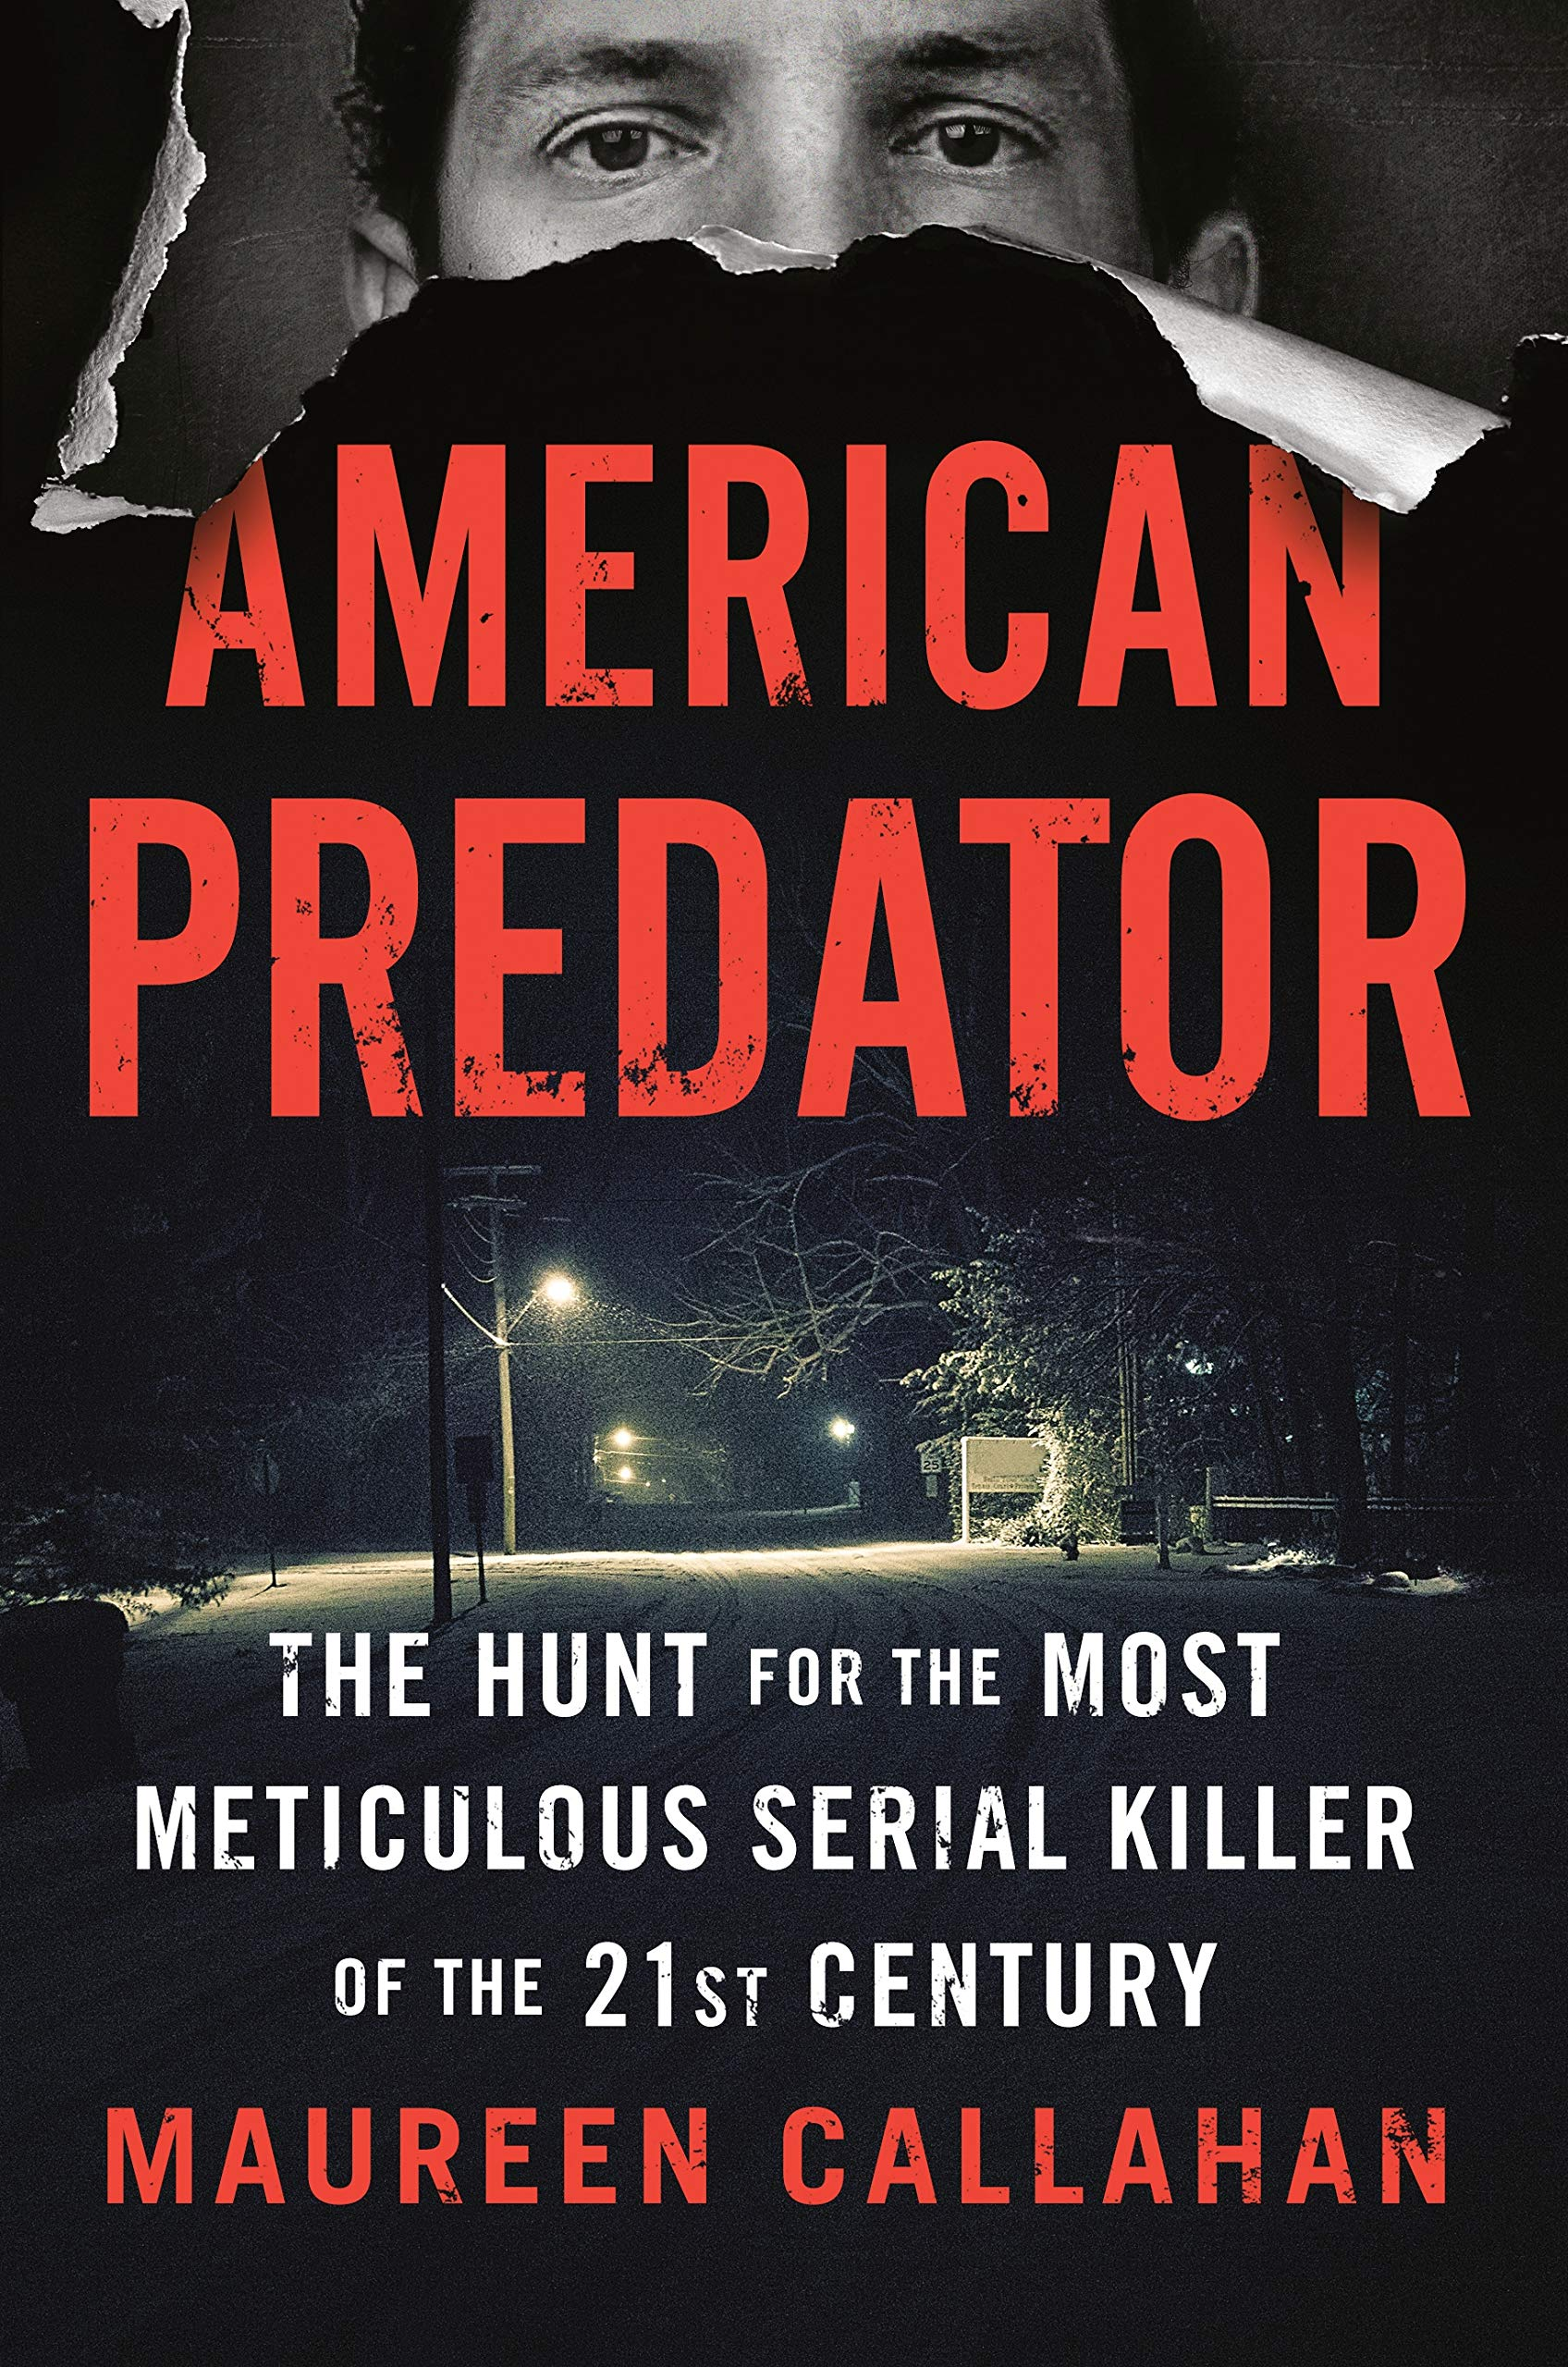 Image result for American Predator: The Hunt for the Most Meticulous Serial Killer of the 21st Century